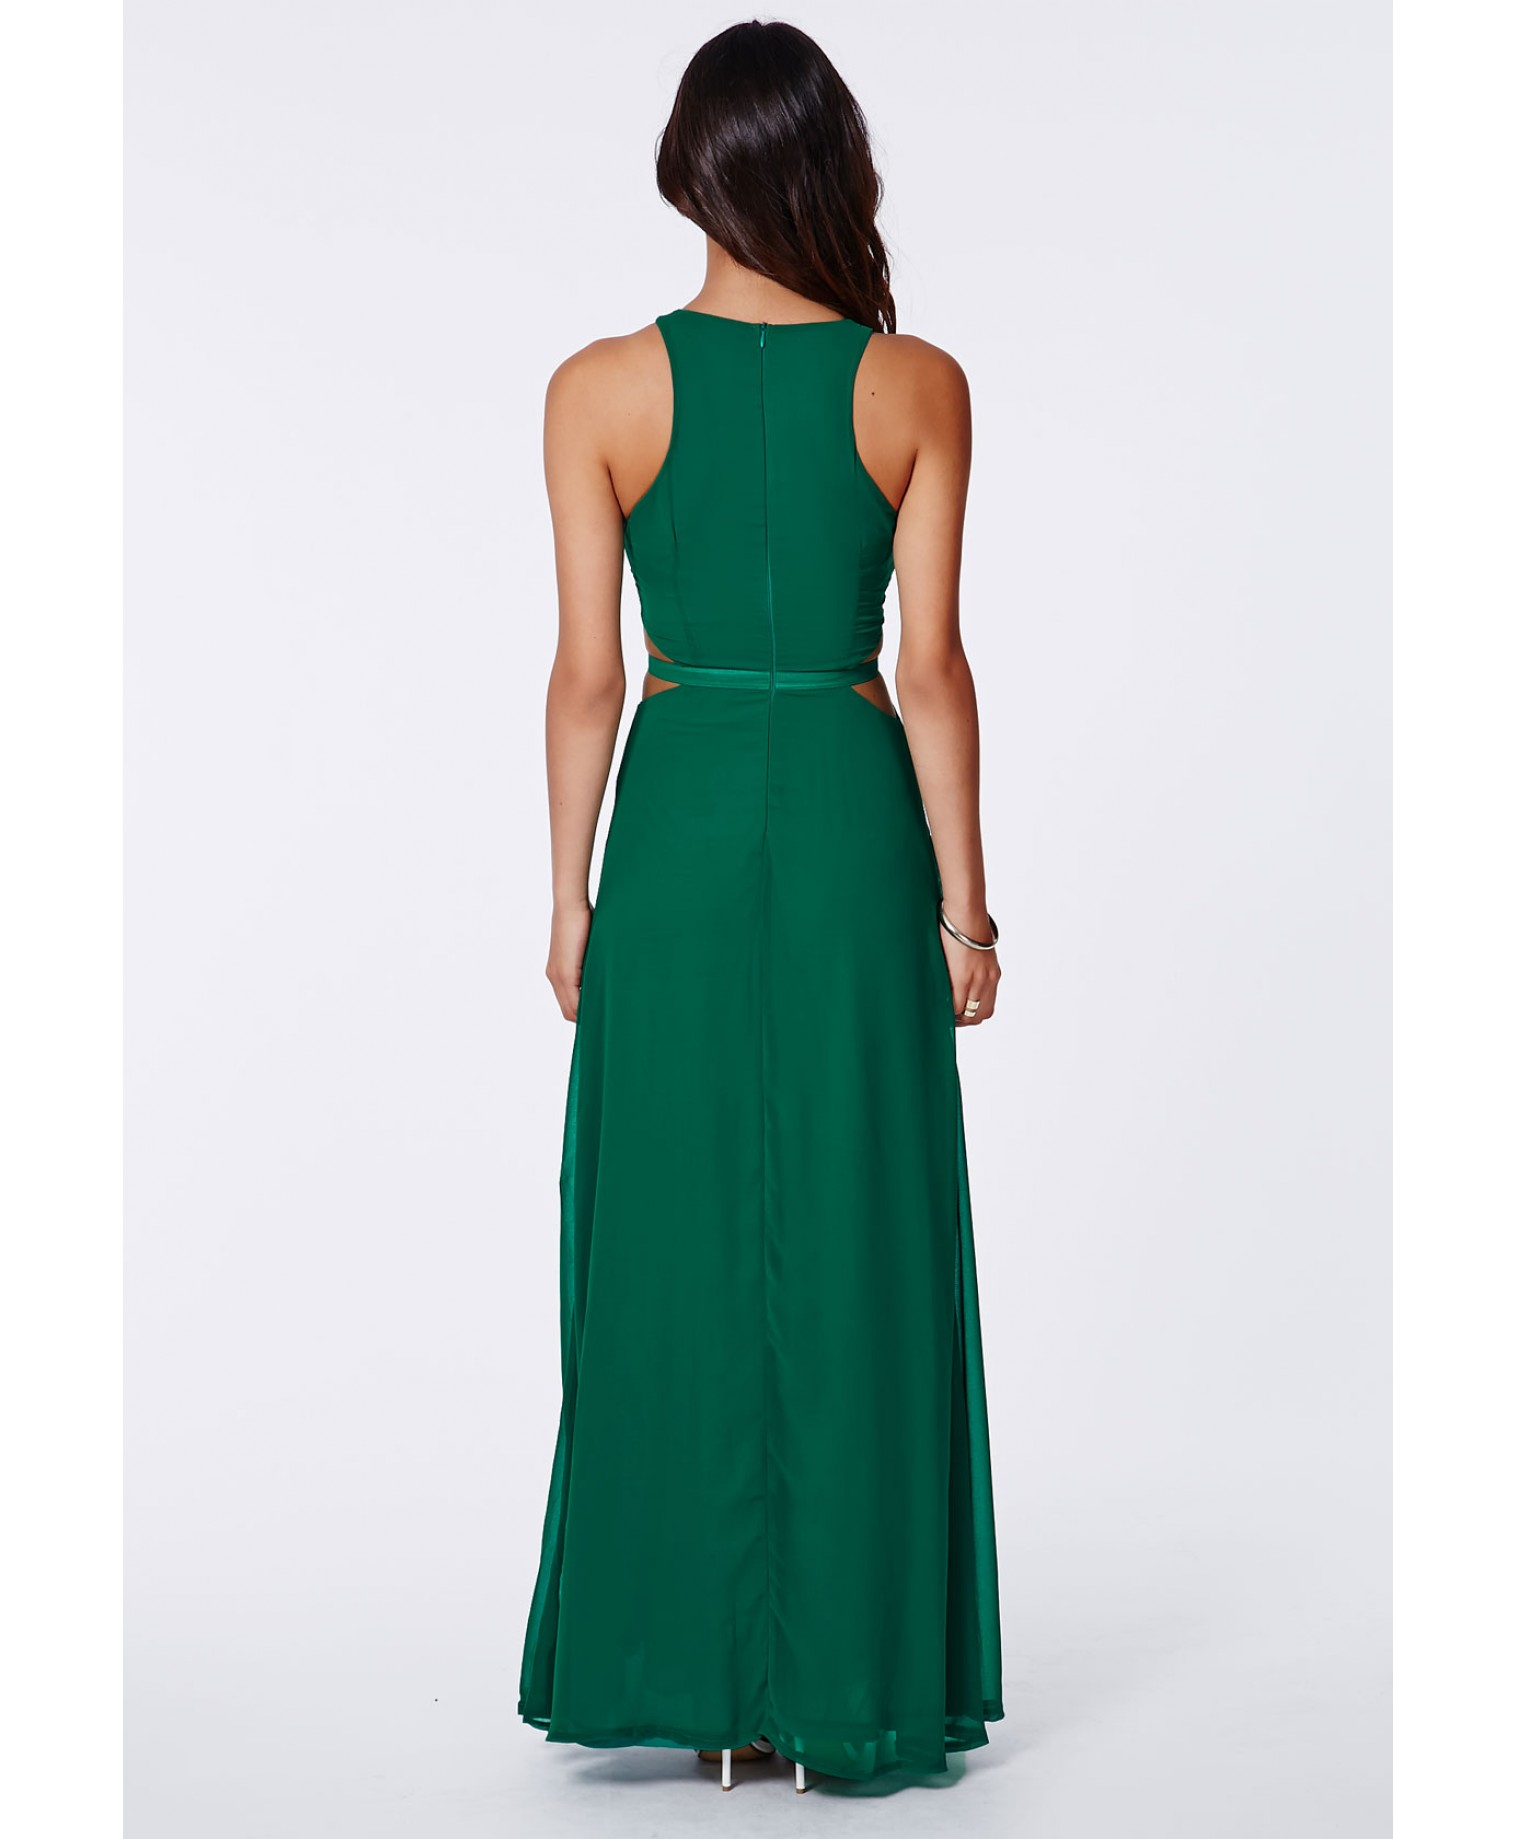 8a466e0b27c6 Missguided Anthea Cut Out Split Maxi Dress Emerald in Green - Lyst